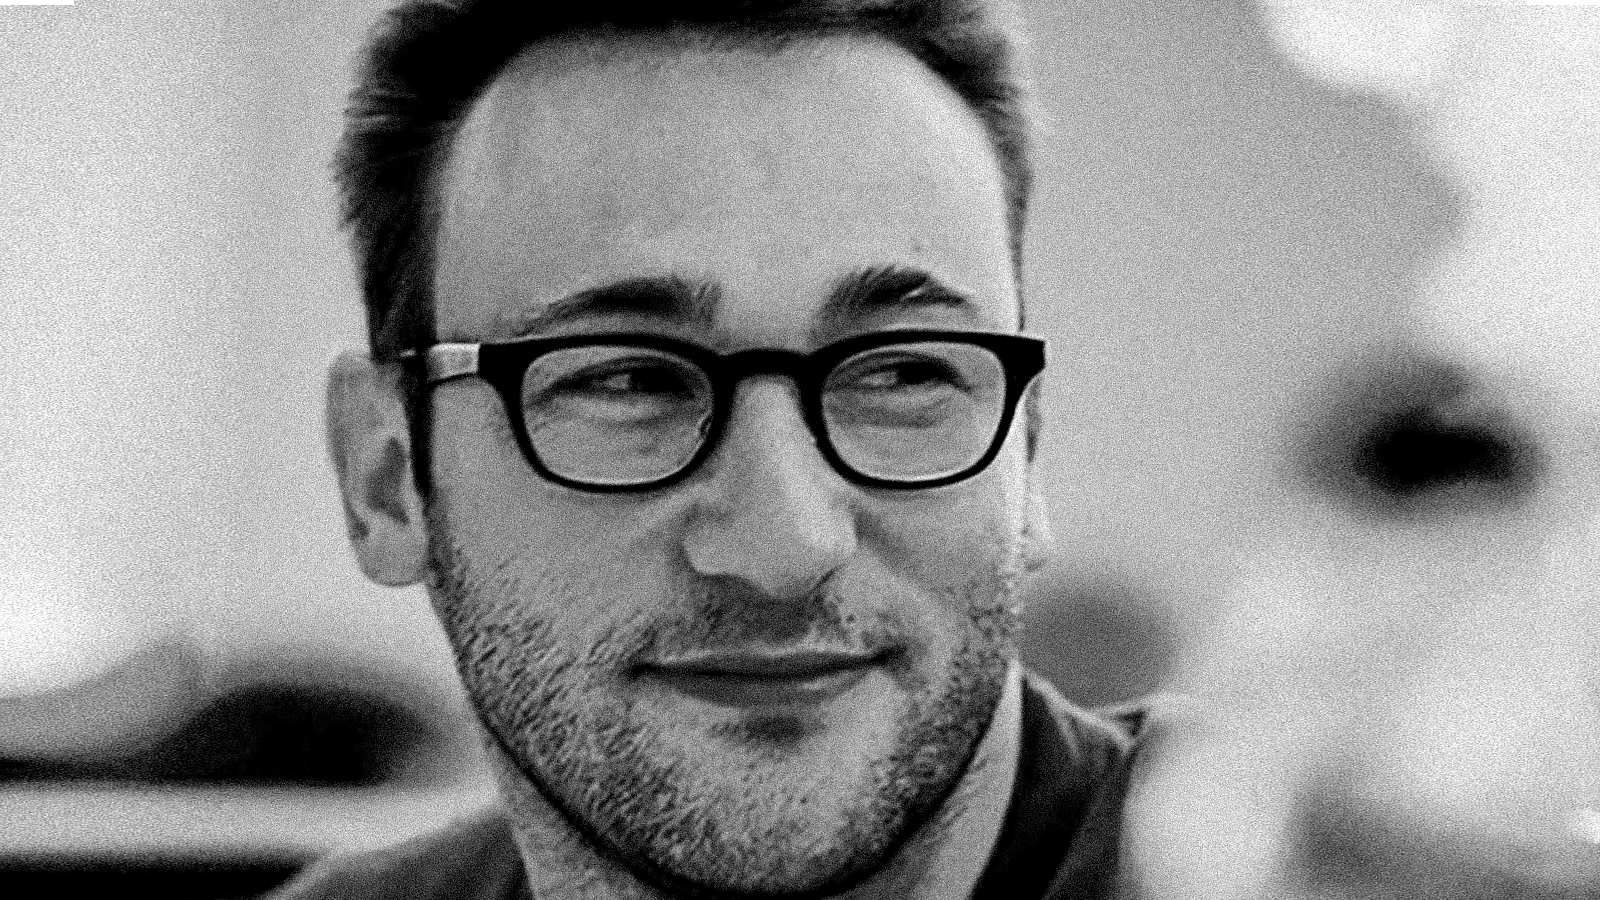 Leadership expert Simon Sinek on the importance of finding your tribe